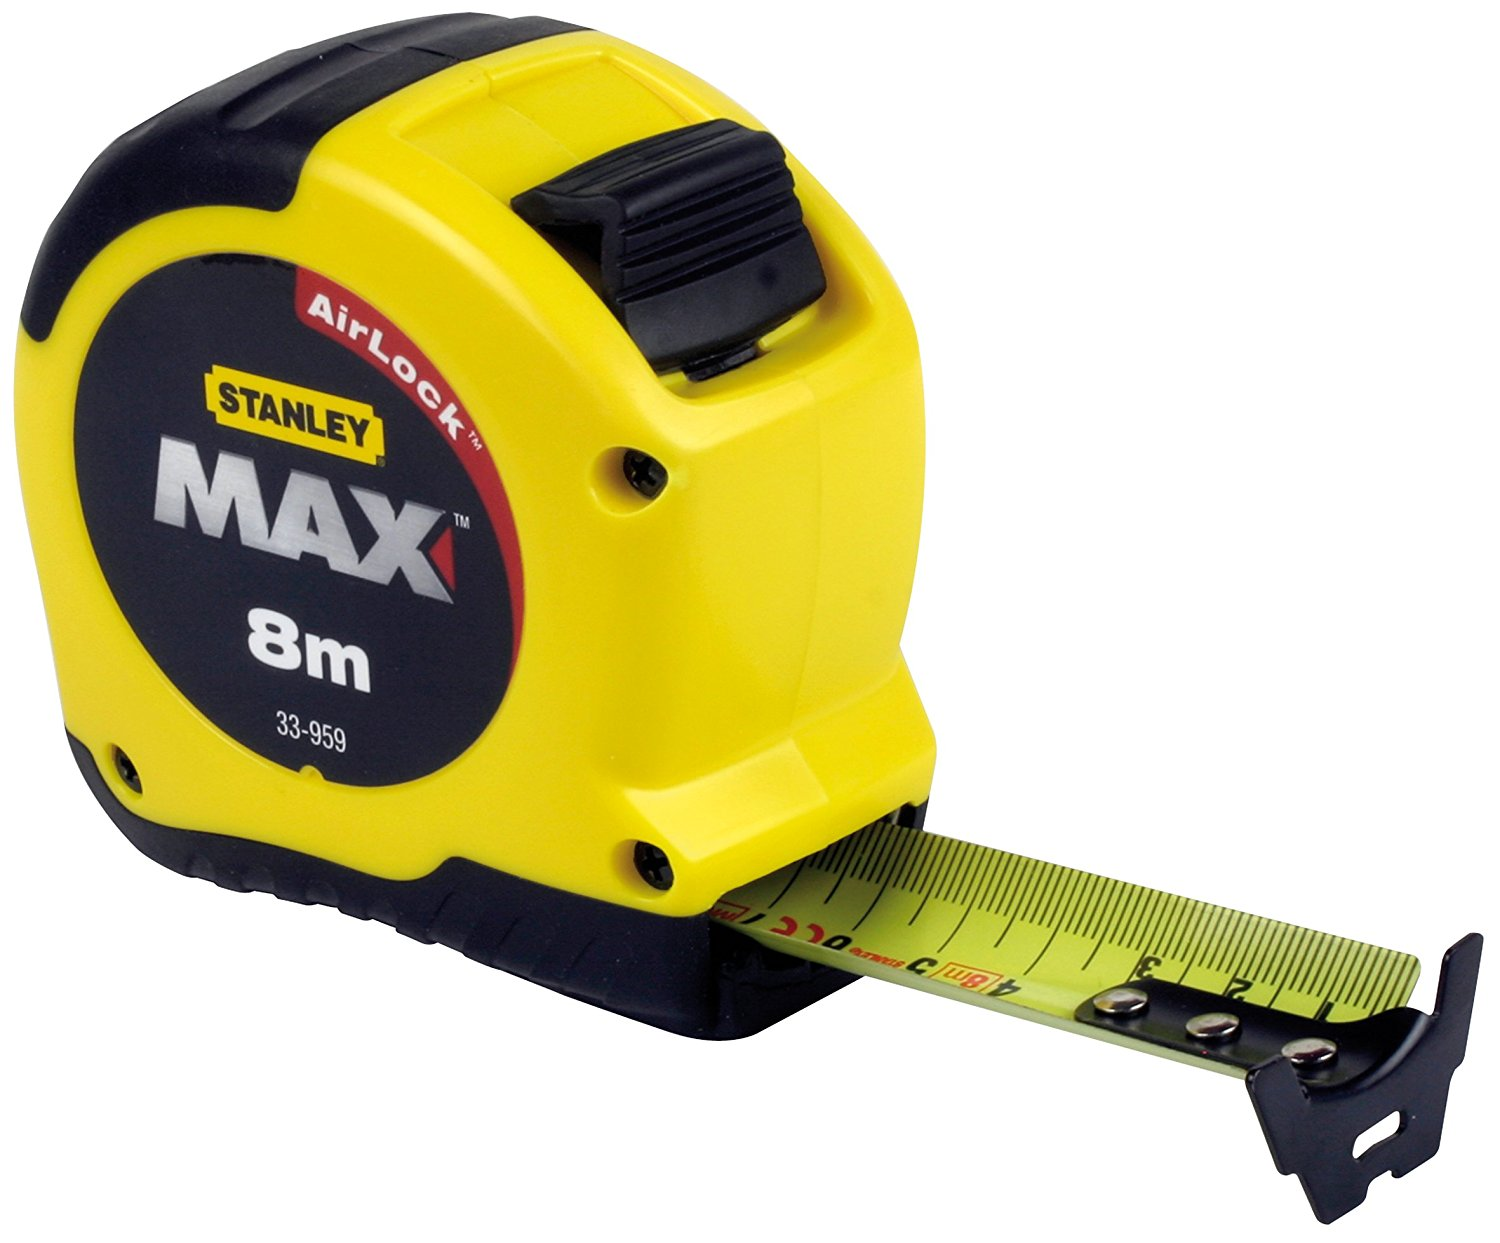 Stanley 0 33 959 max tape measure with magnetic hook 8 m for Magnetic fish tape